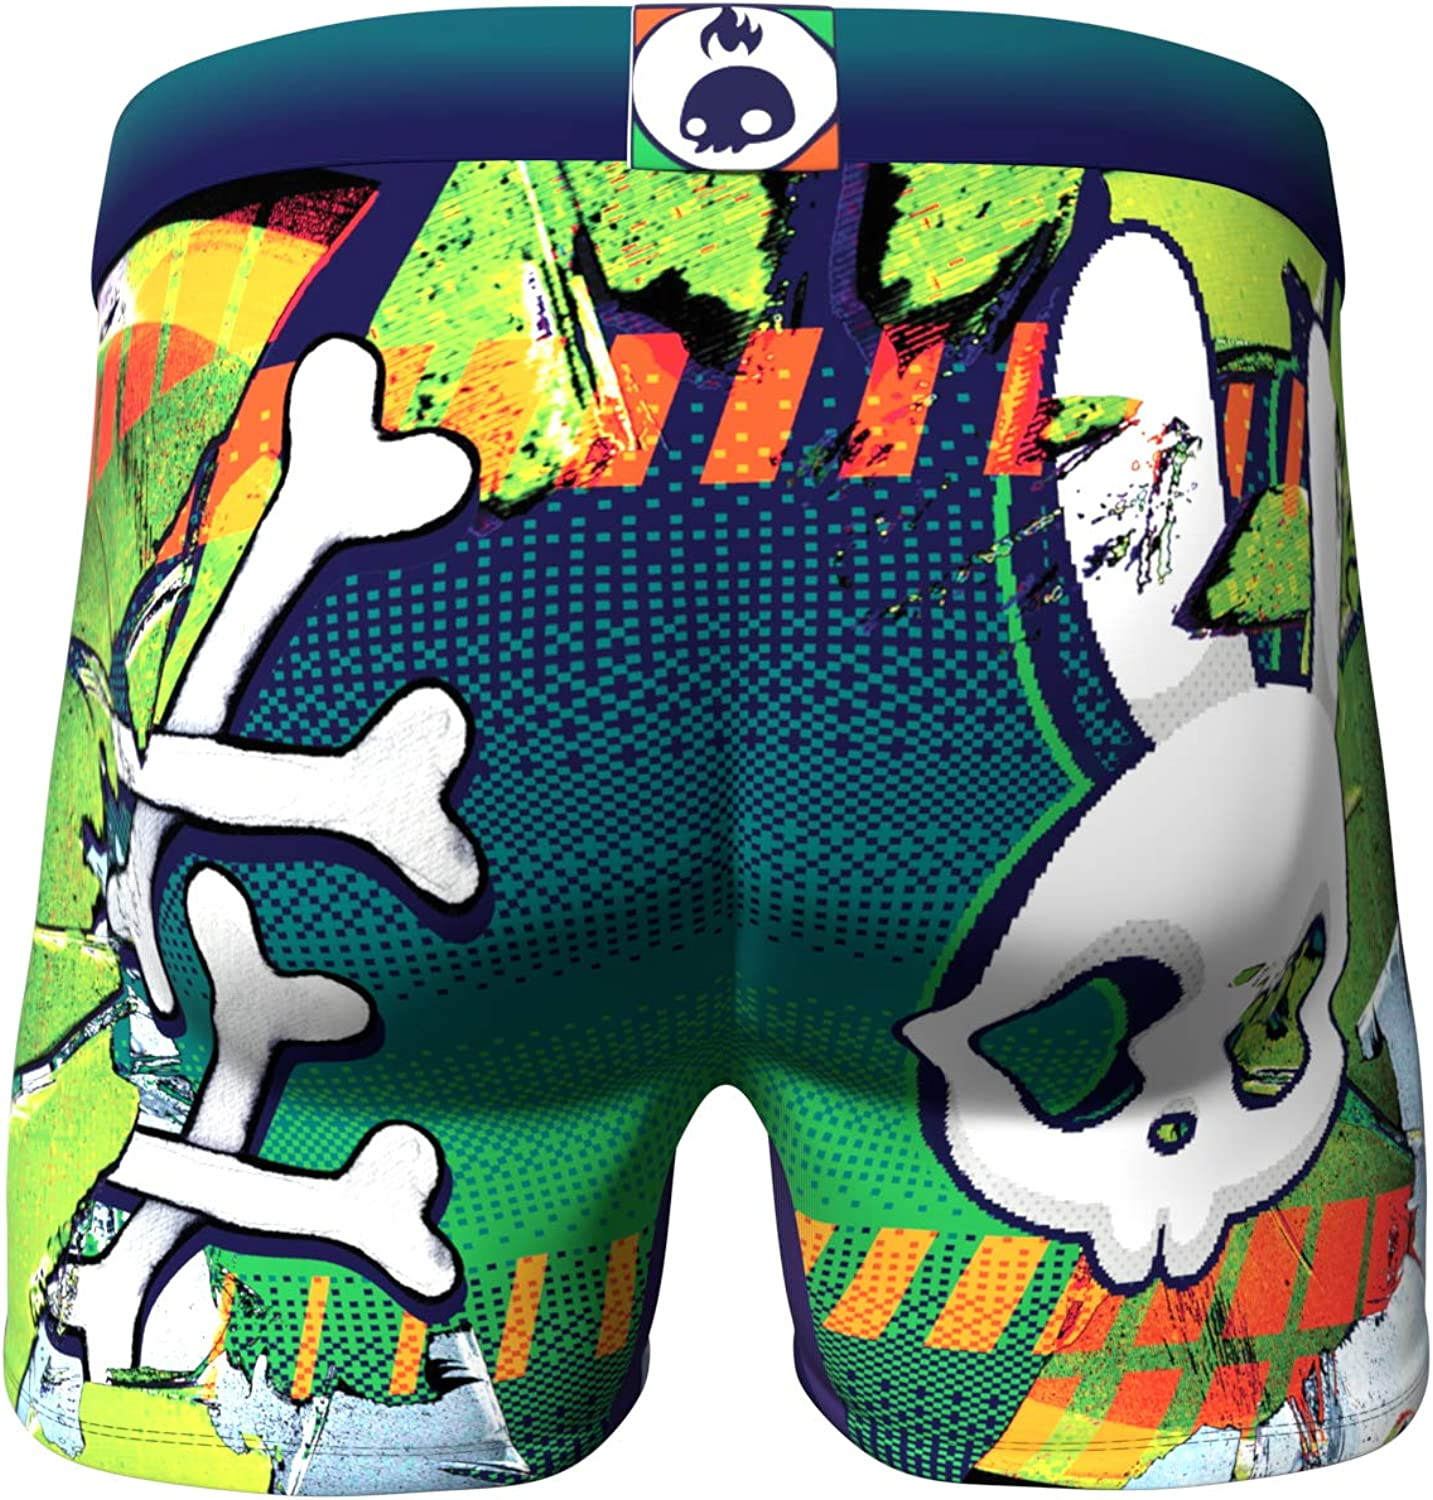 Men's 5-Pack Boxer Briefs - Colorful - Skulls and Donuts